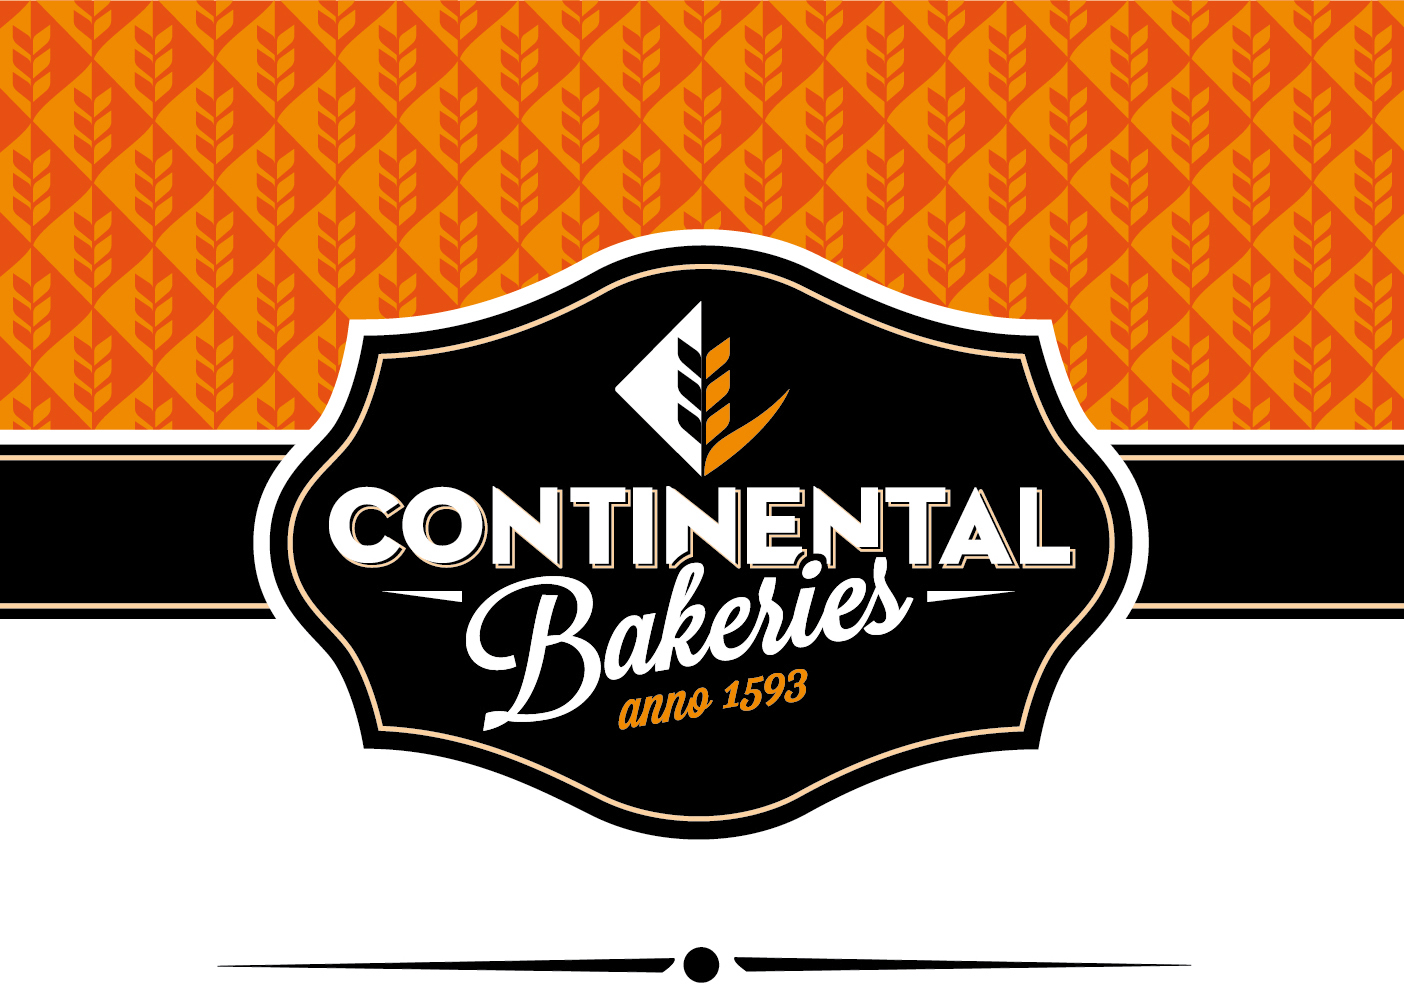 Continental Bakeries B.V.